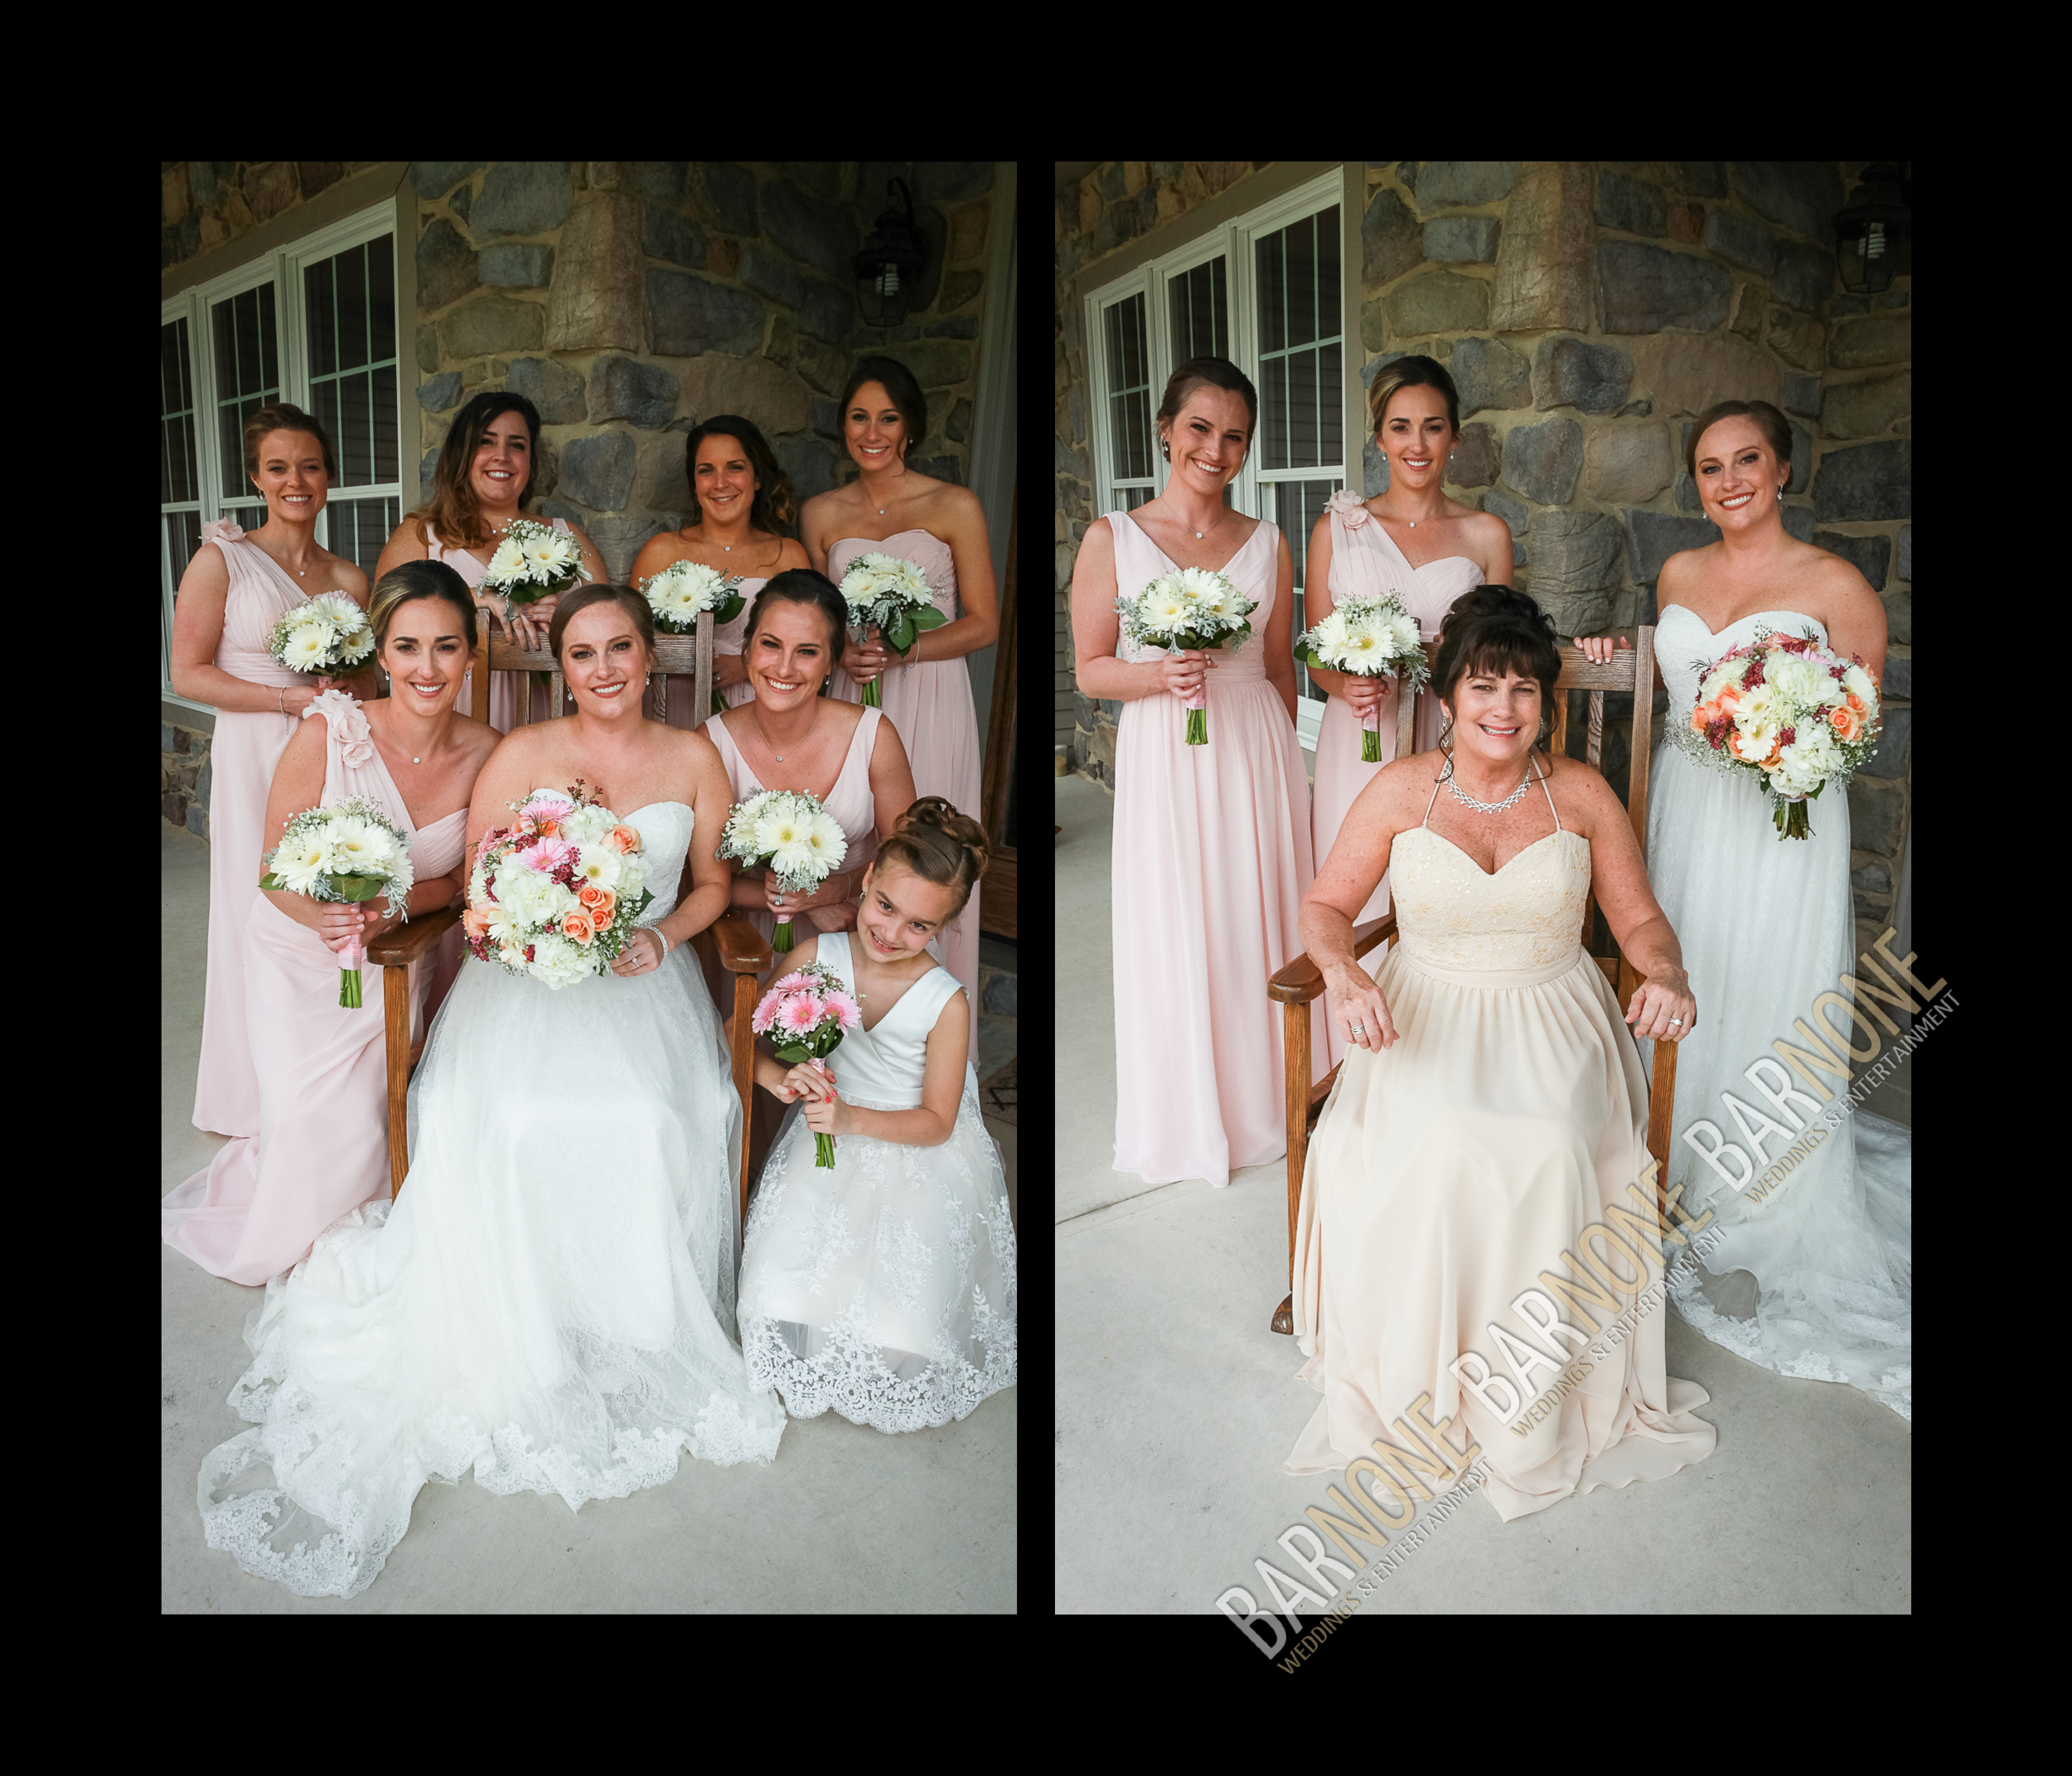 Carrie and Keith wedding photography at Barn Swallow Farm ...